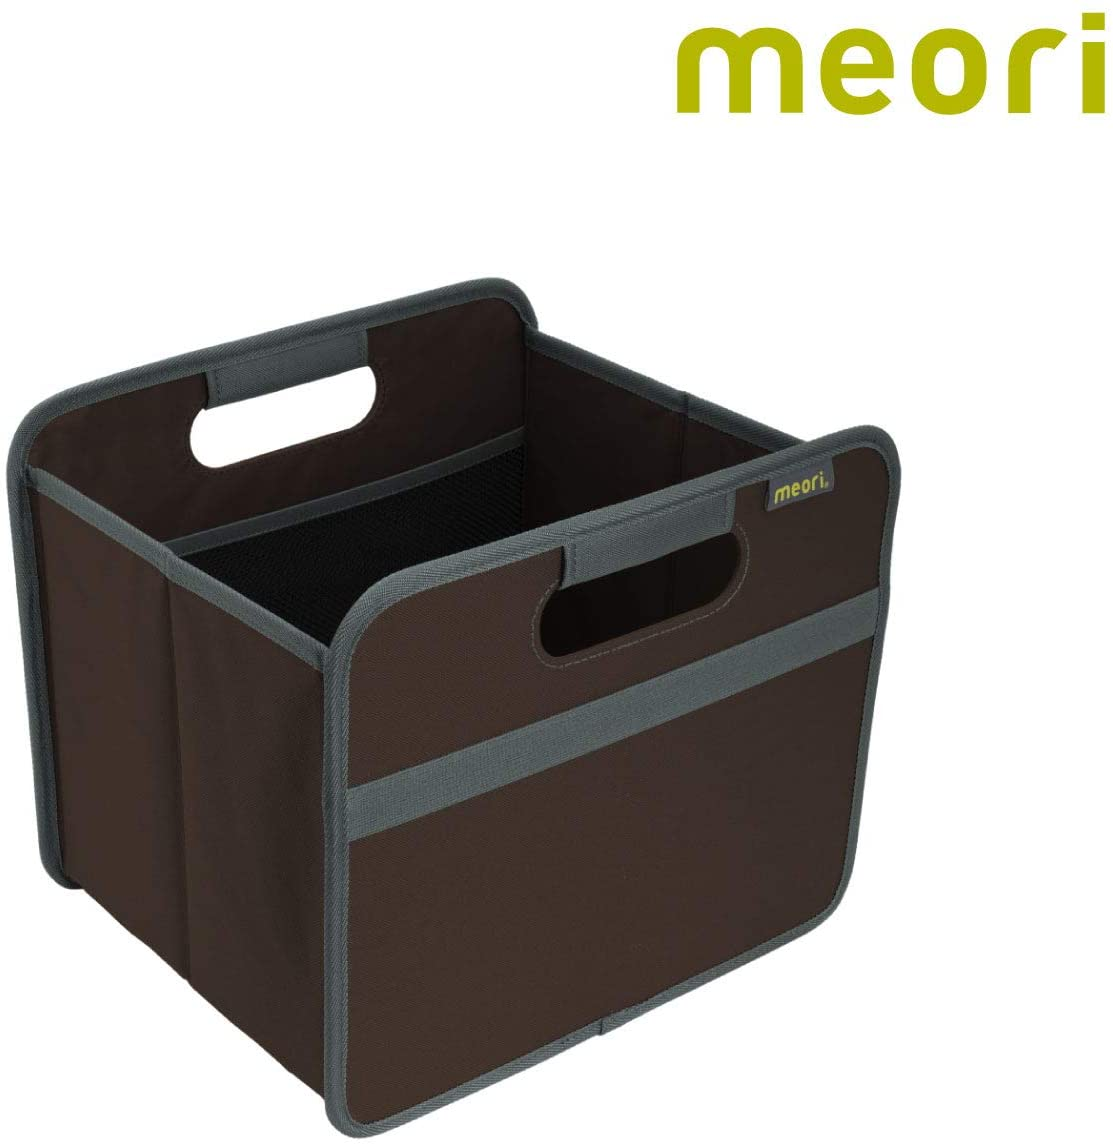 meori Cacao Brown Collapsible Organizer Store Carry Bedroom Bathroom Nursery Laundry Books up to 65lbs Foldable Box Small, 1-Pack